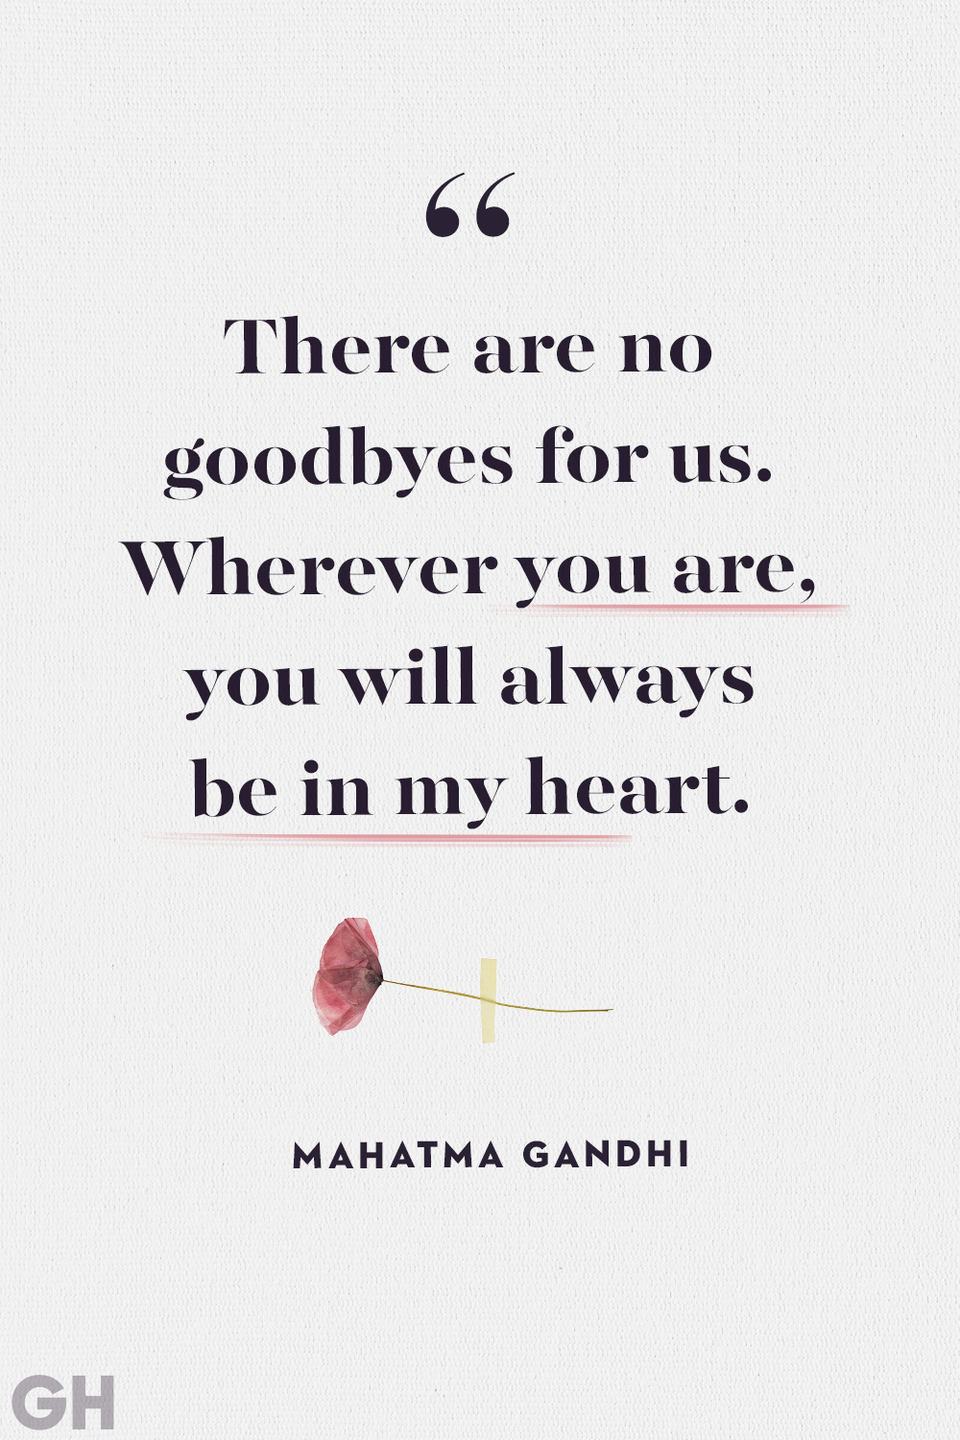 <p>There are no goodbyes for us. Wherever you are, you will always be in my heart.</p>